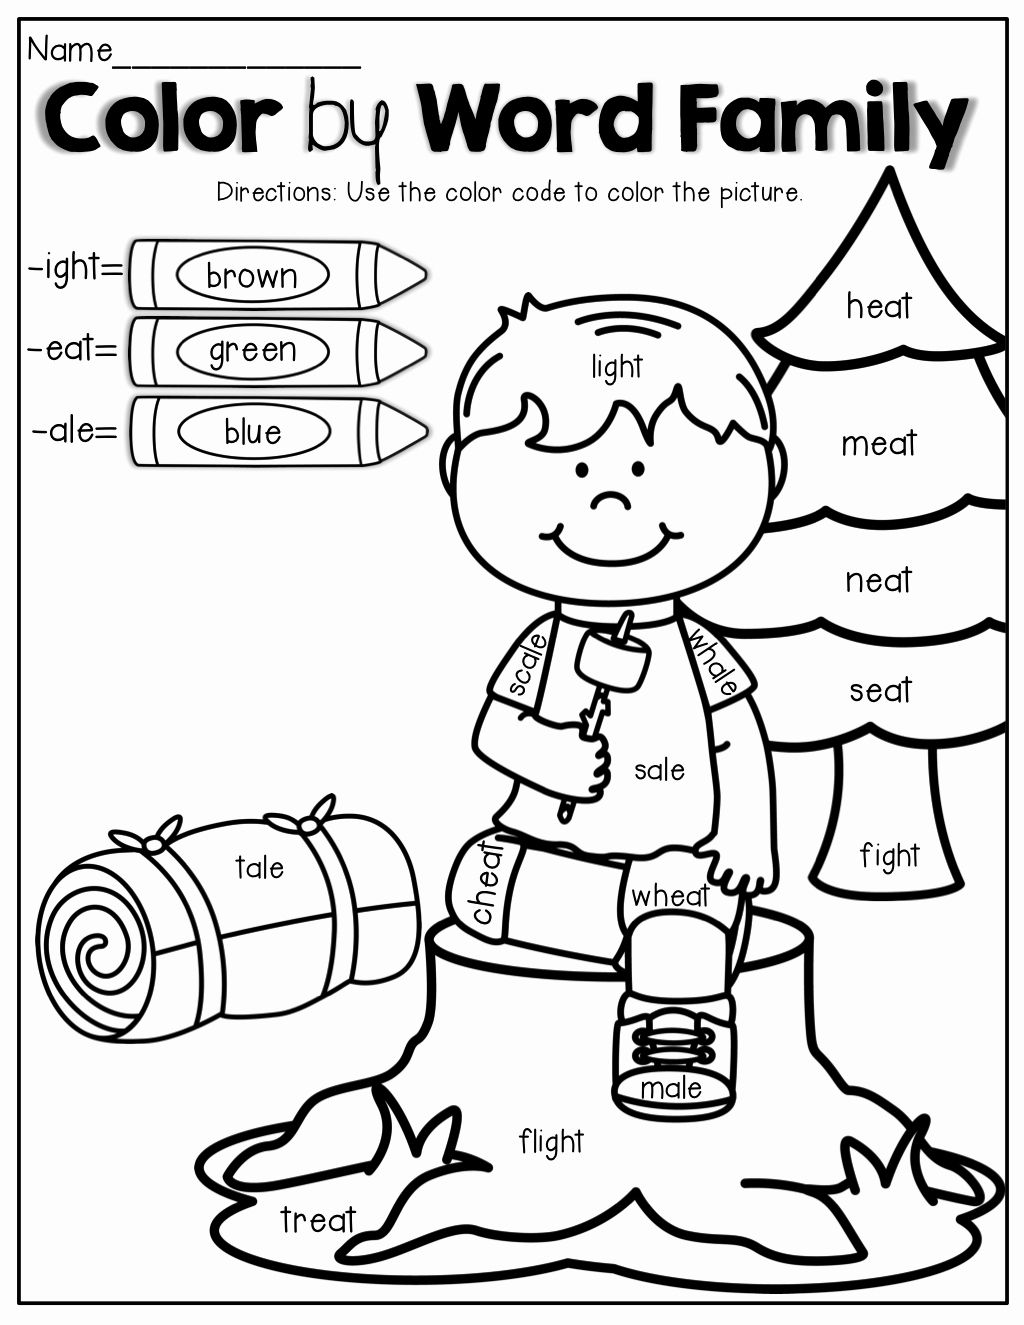 Summer Reading Coloring Pages Beautiful Color By Word